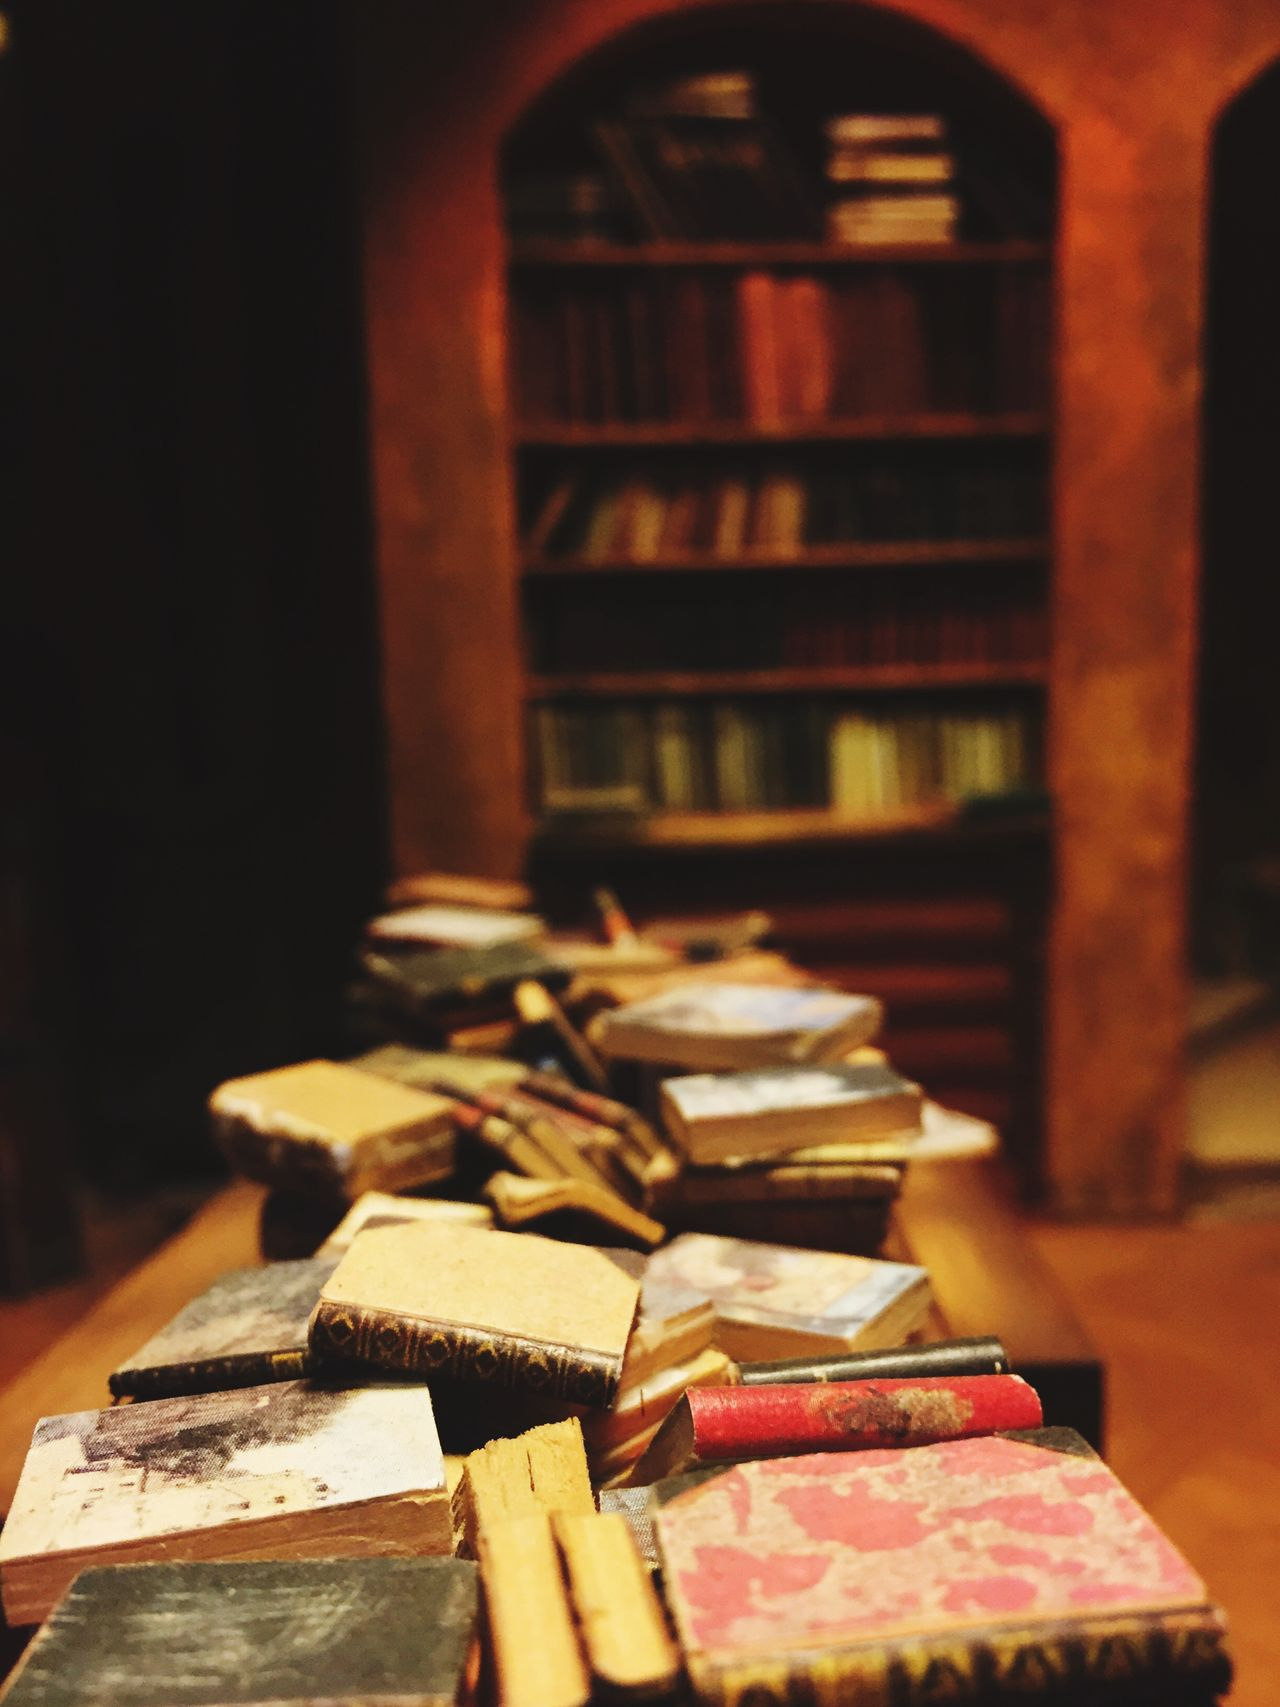 Book Booking A Room Books ♥ Bookstagram Booklover Book Collections Bookphoto BookLovers Book Of Dreams... Bookcase Book